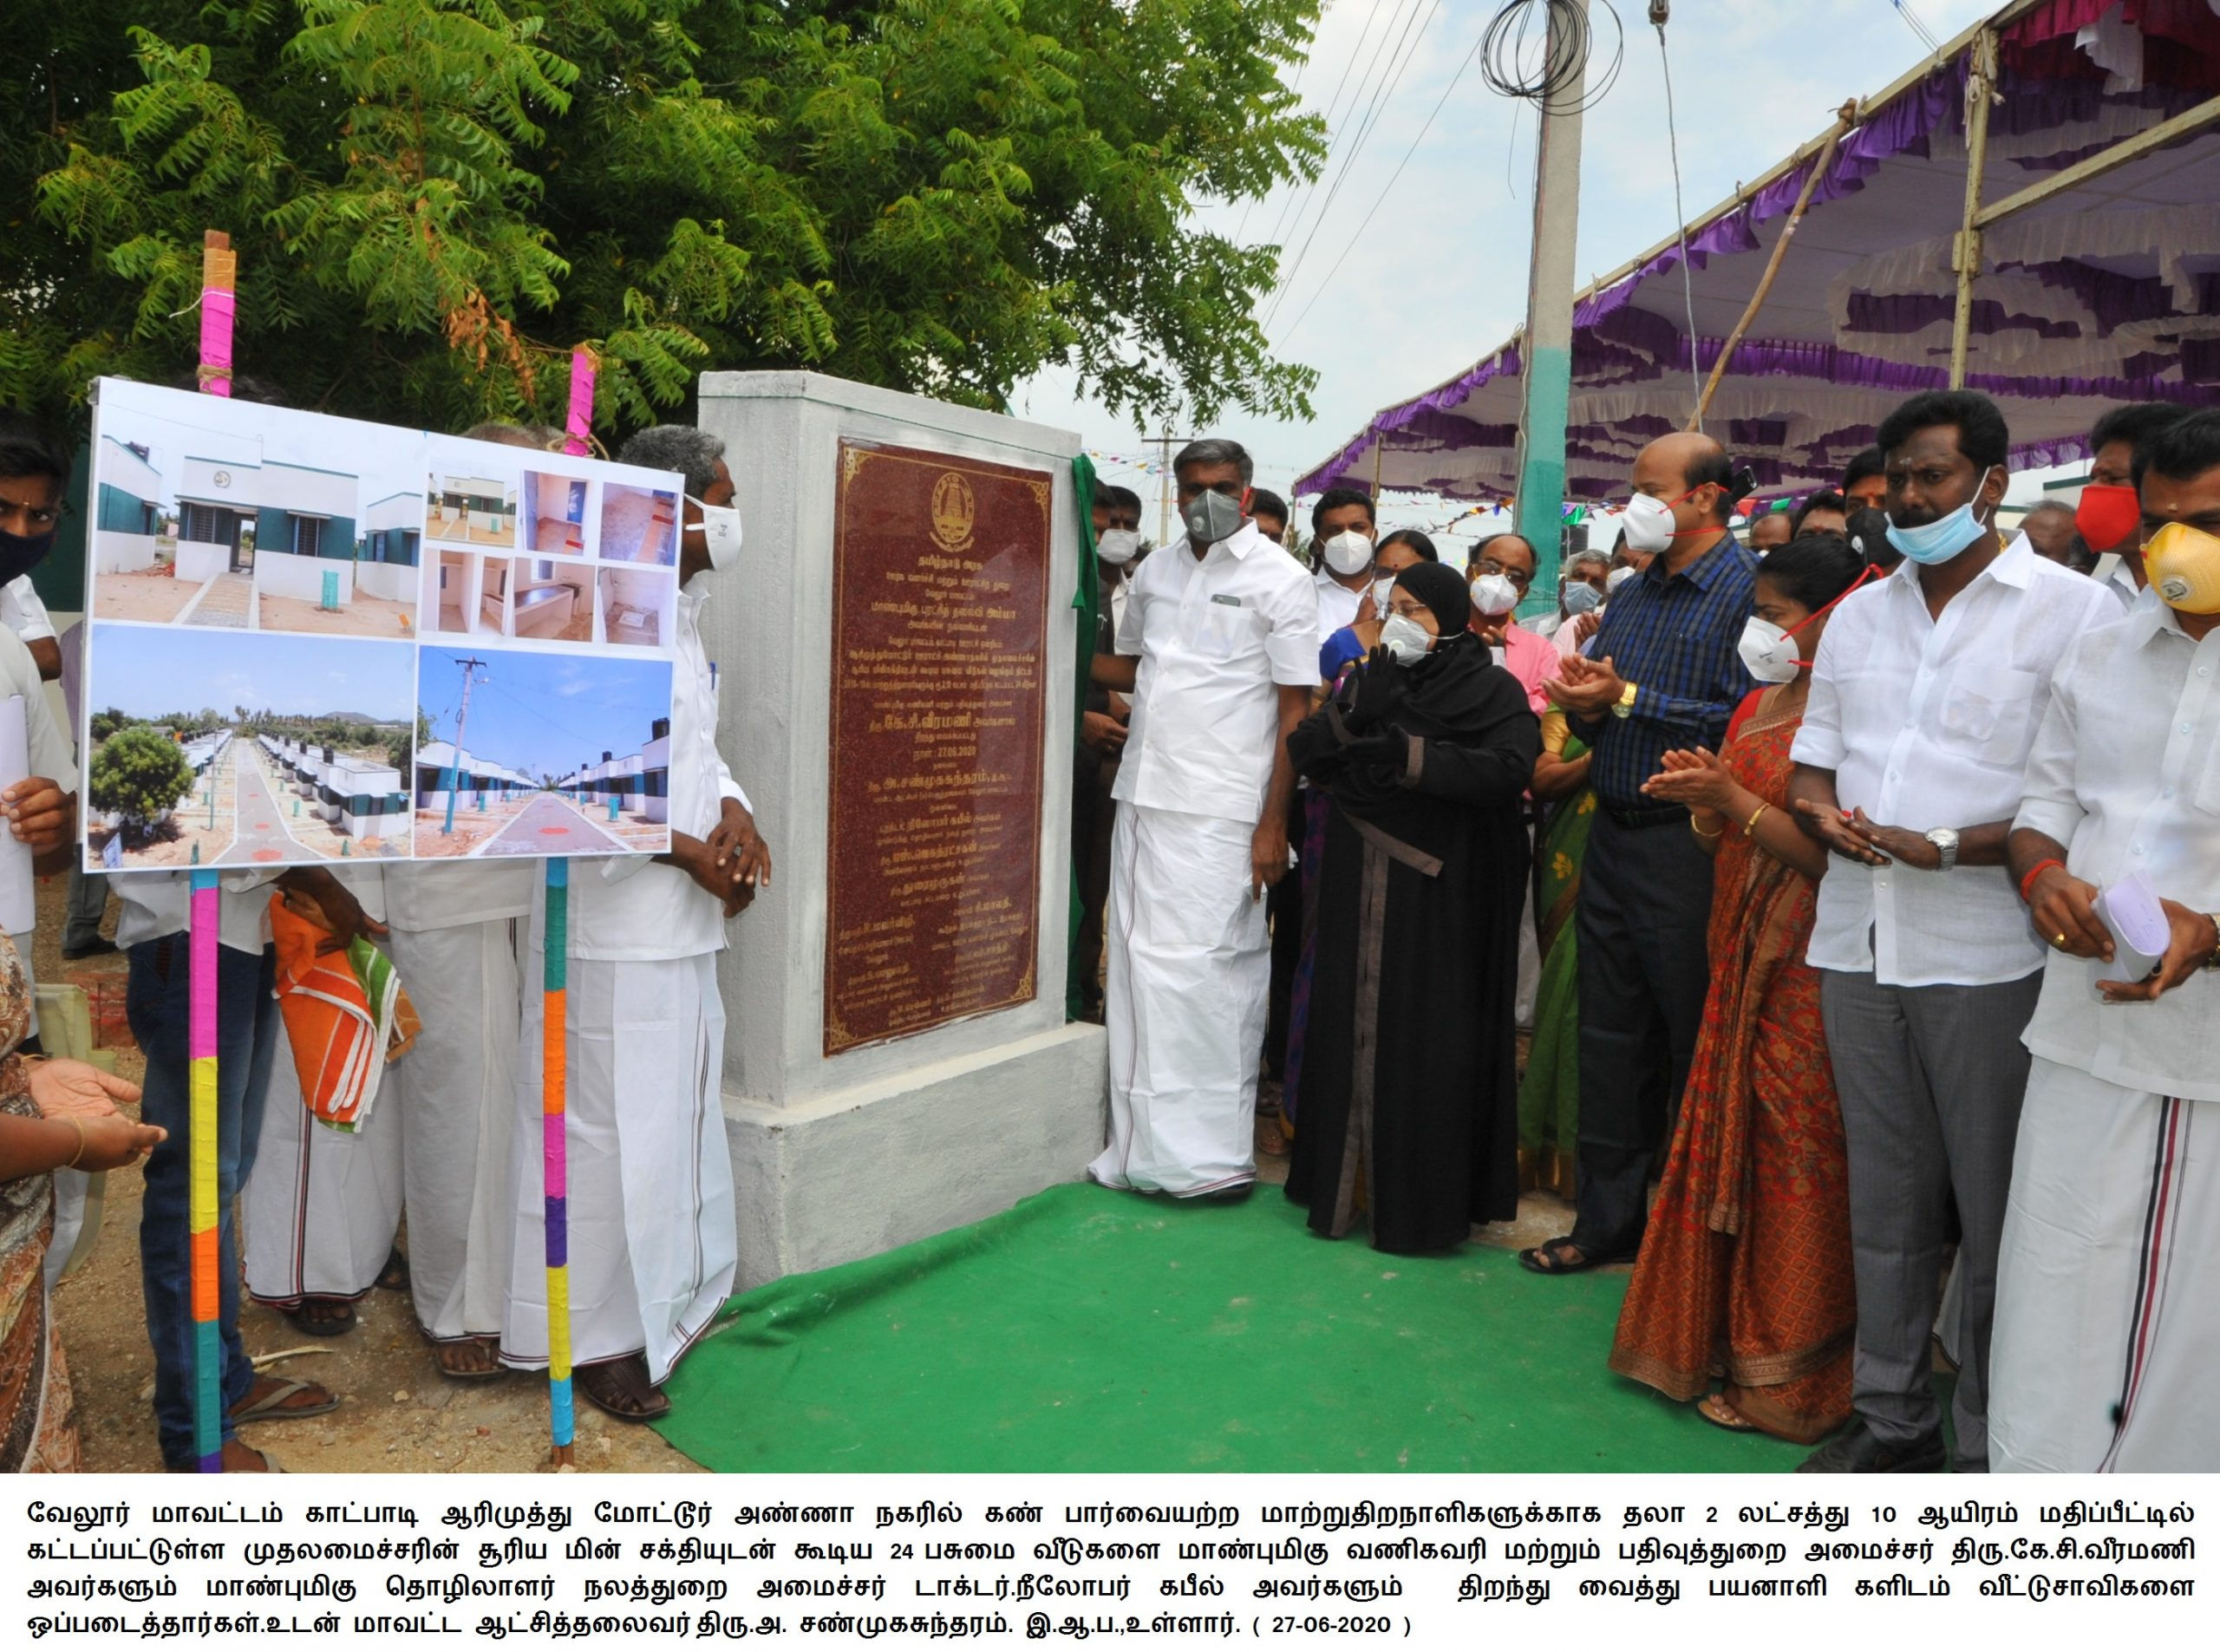 Honorable Commercial Tax and Registration Department Minister and Labour welfare Minister inaugurated Green House 27-06-2020